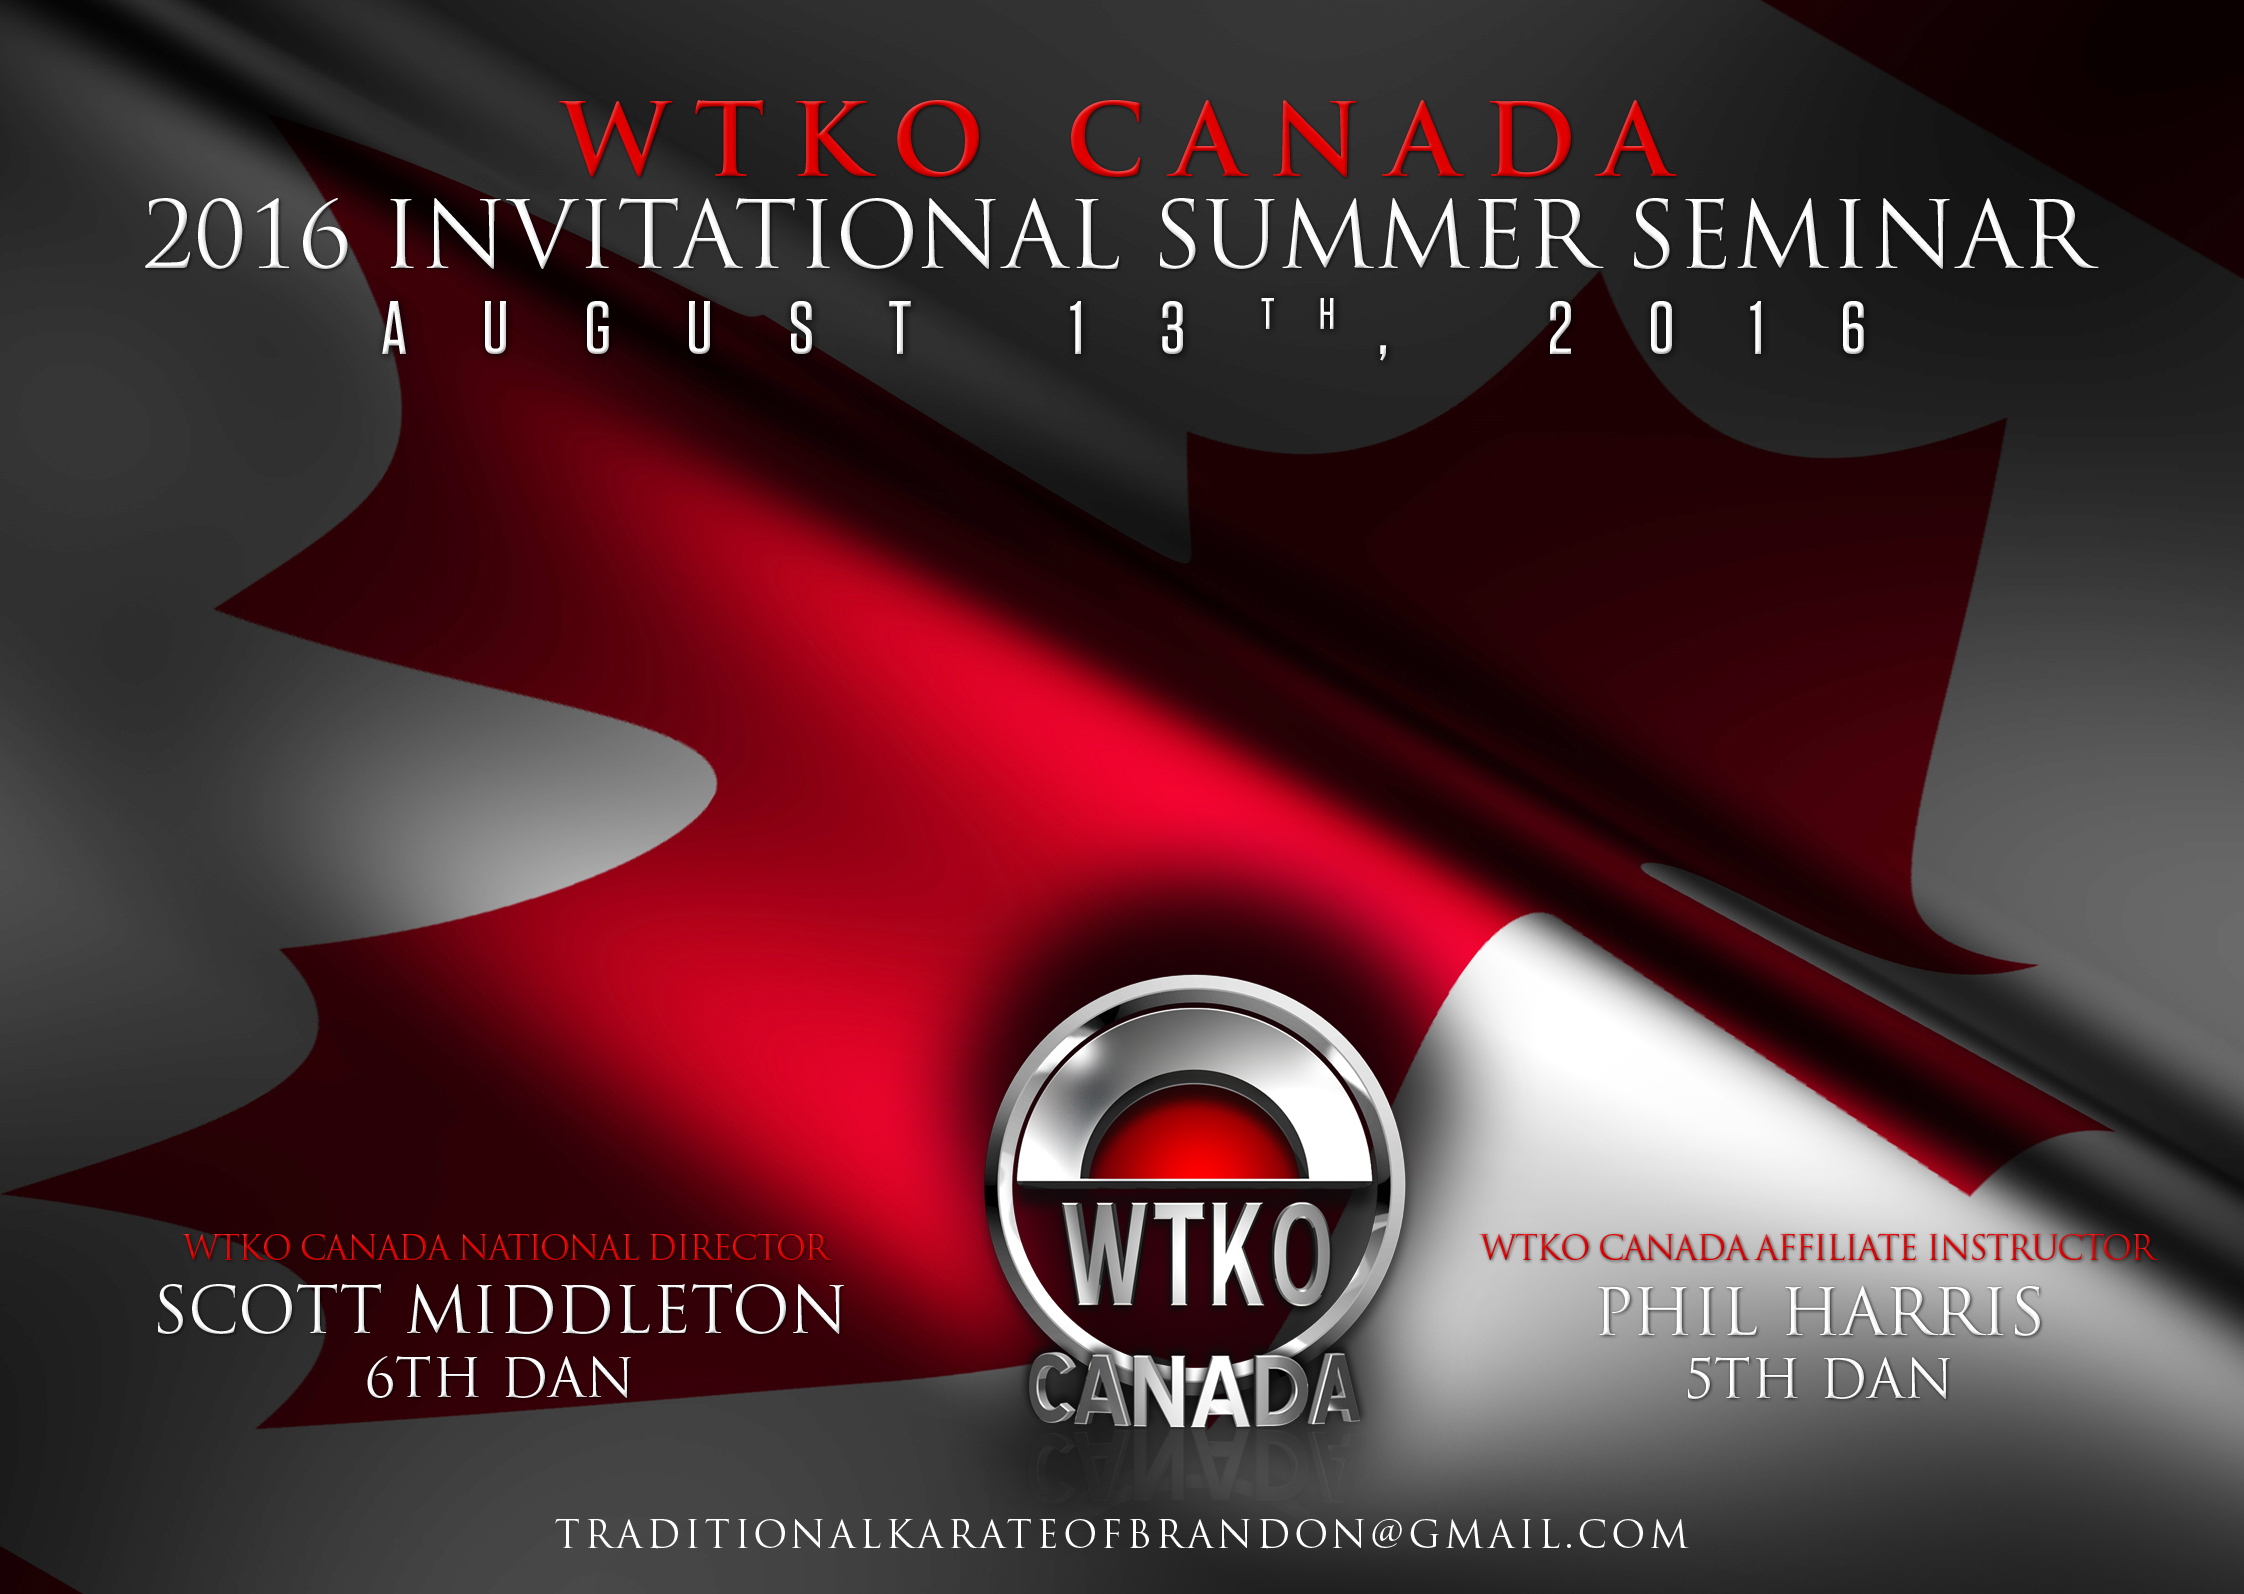 2016 WTKO Canada Invitational Summer Seminar